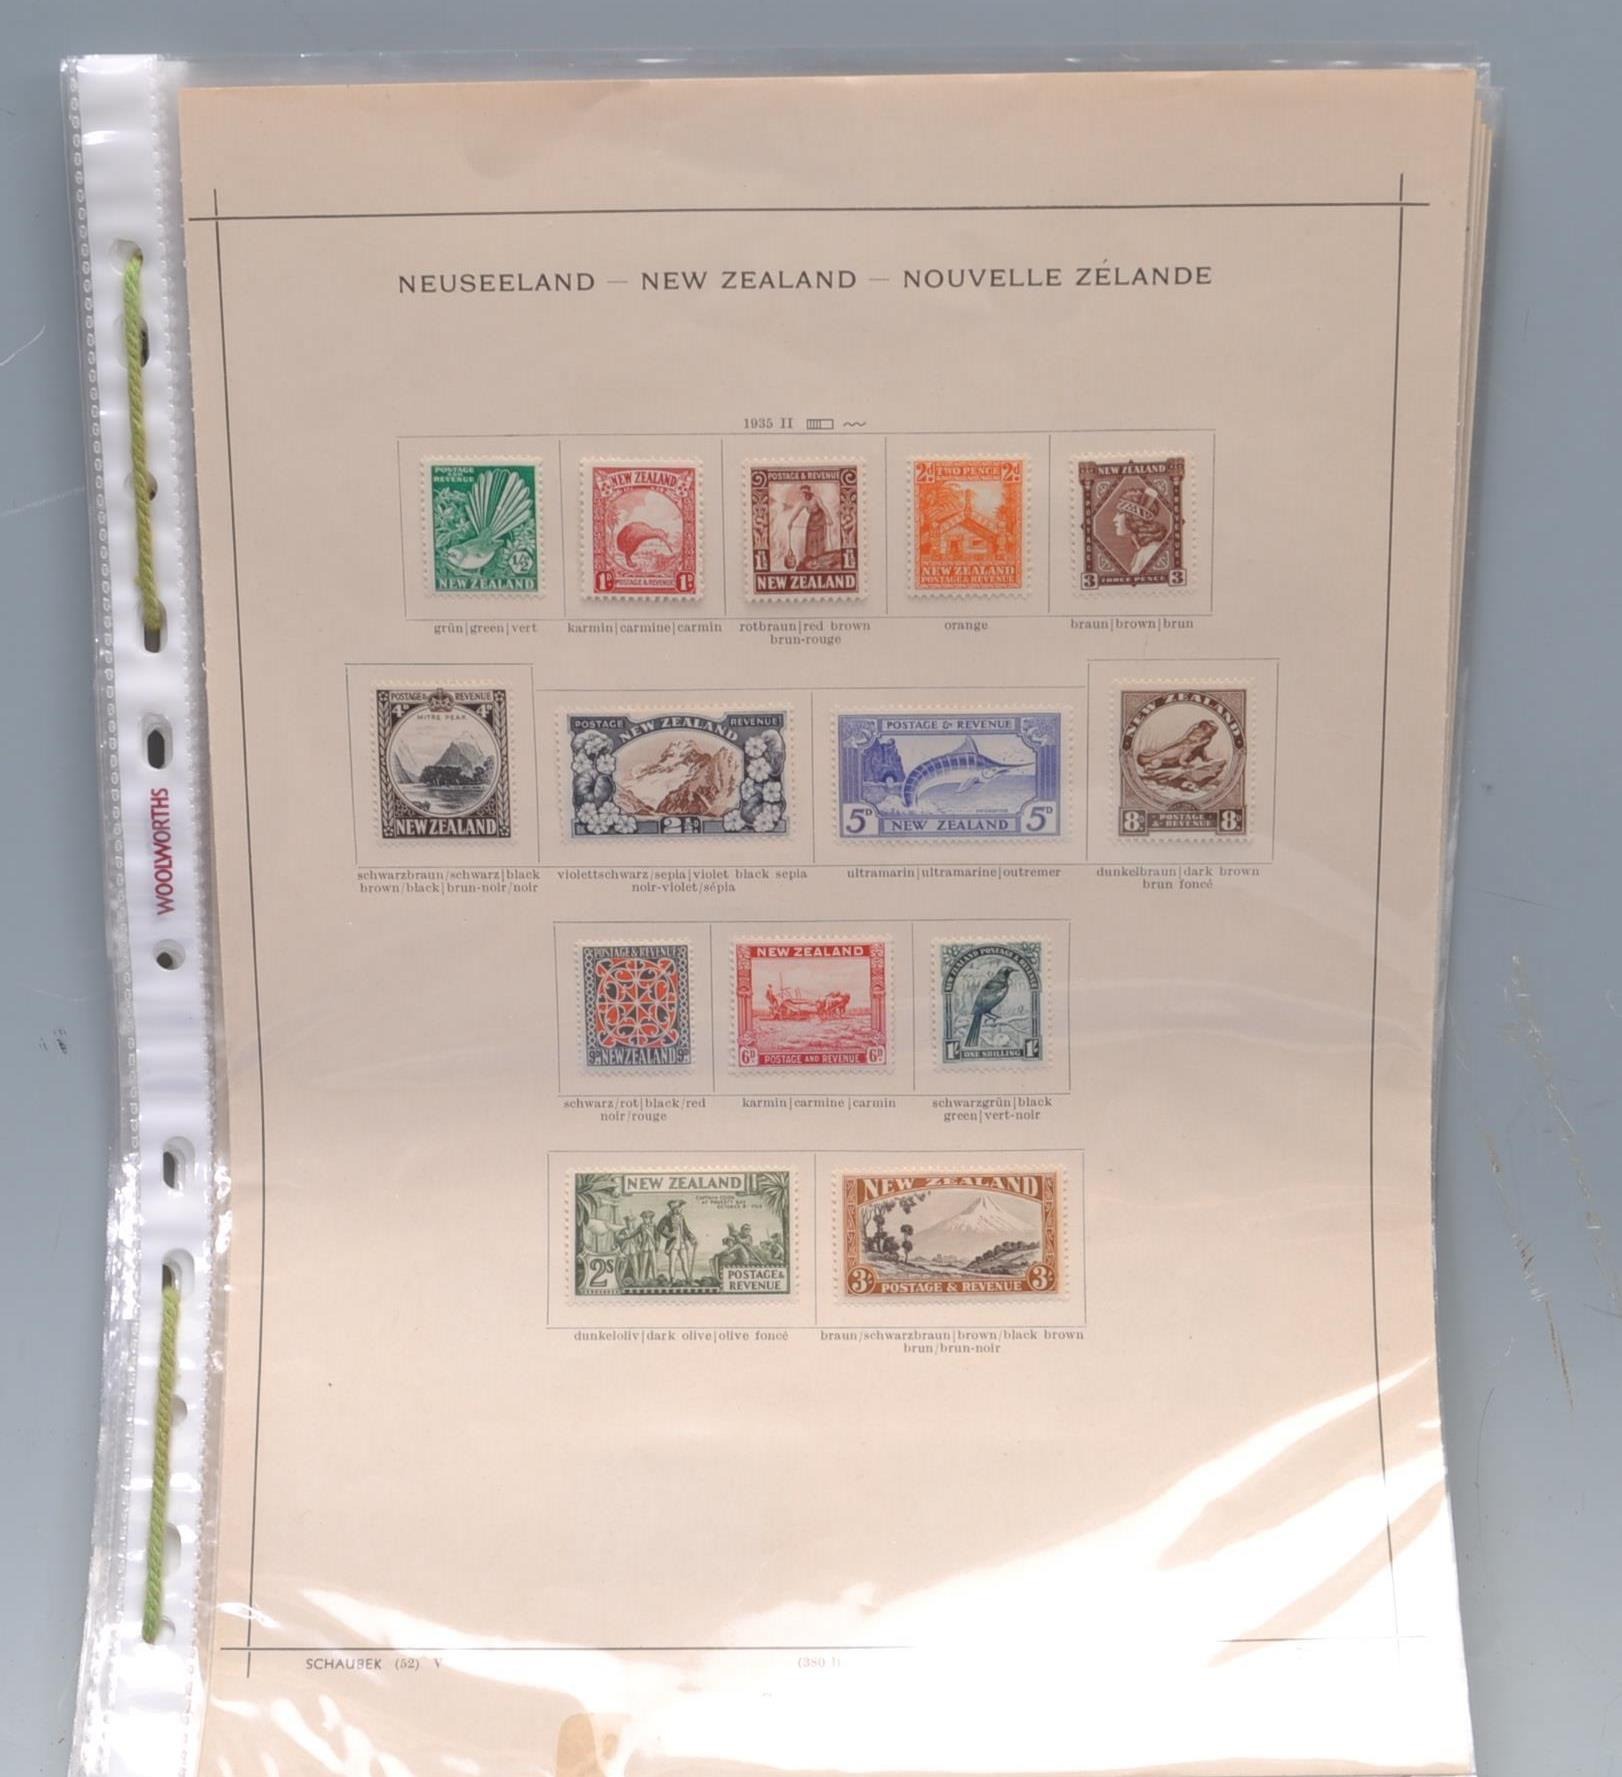 NEW ZEALAND MINT COLLECTION OF POSTAGE STAMPS